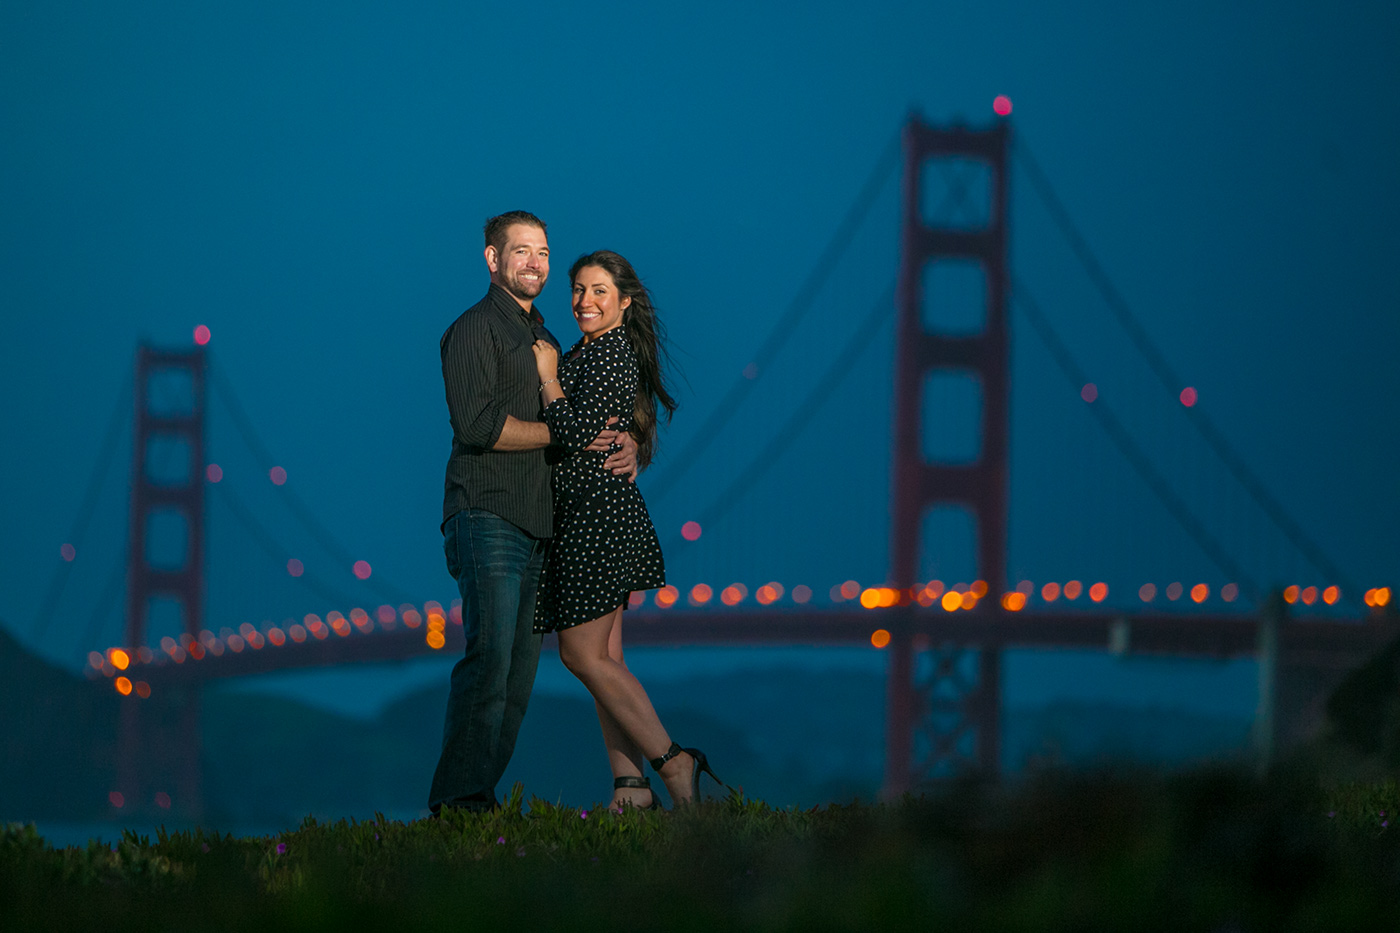 baker-beach-engagement-photos-3